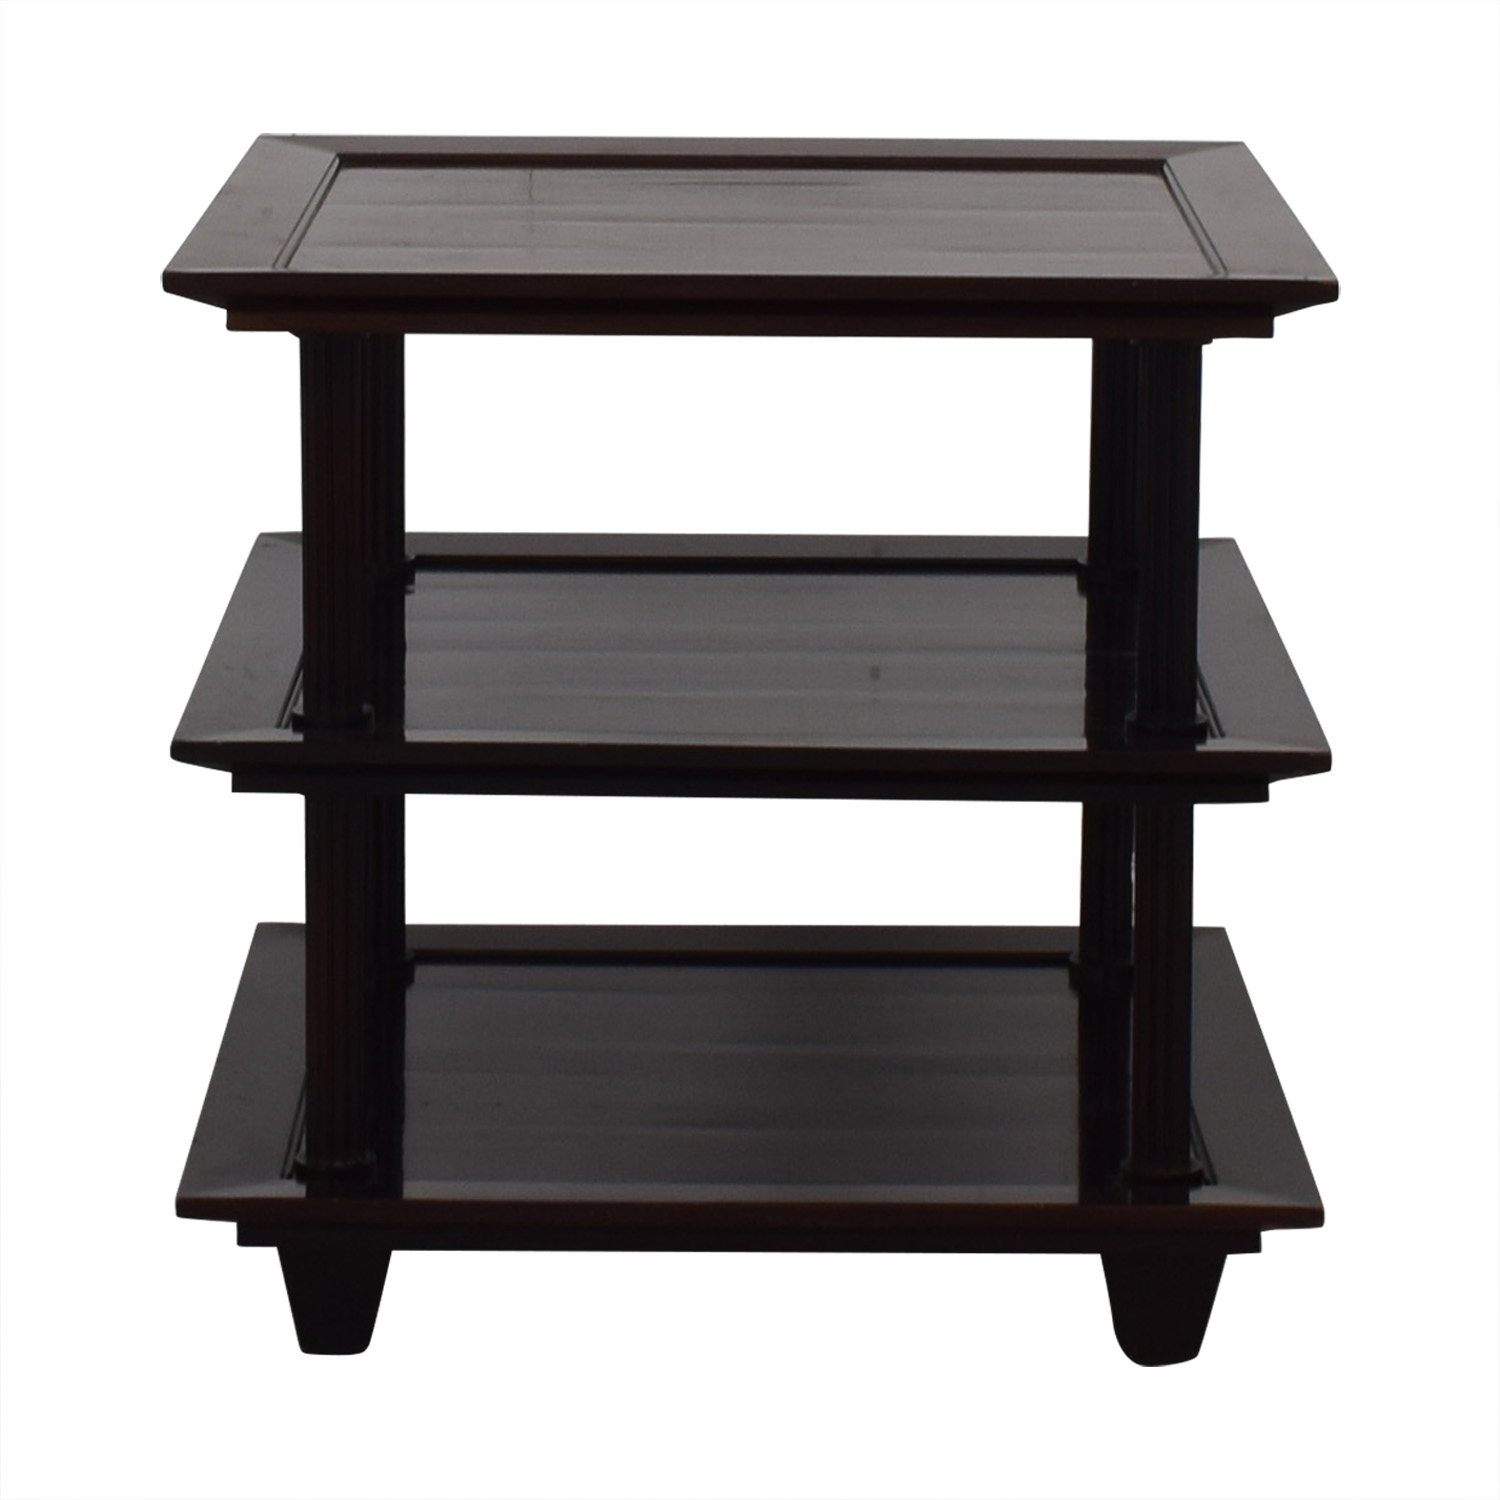 Baker Furniture Baker Furniture by Barbara Barry Three Tiered Accent Table nj